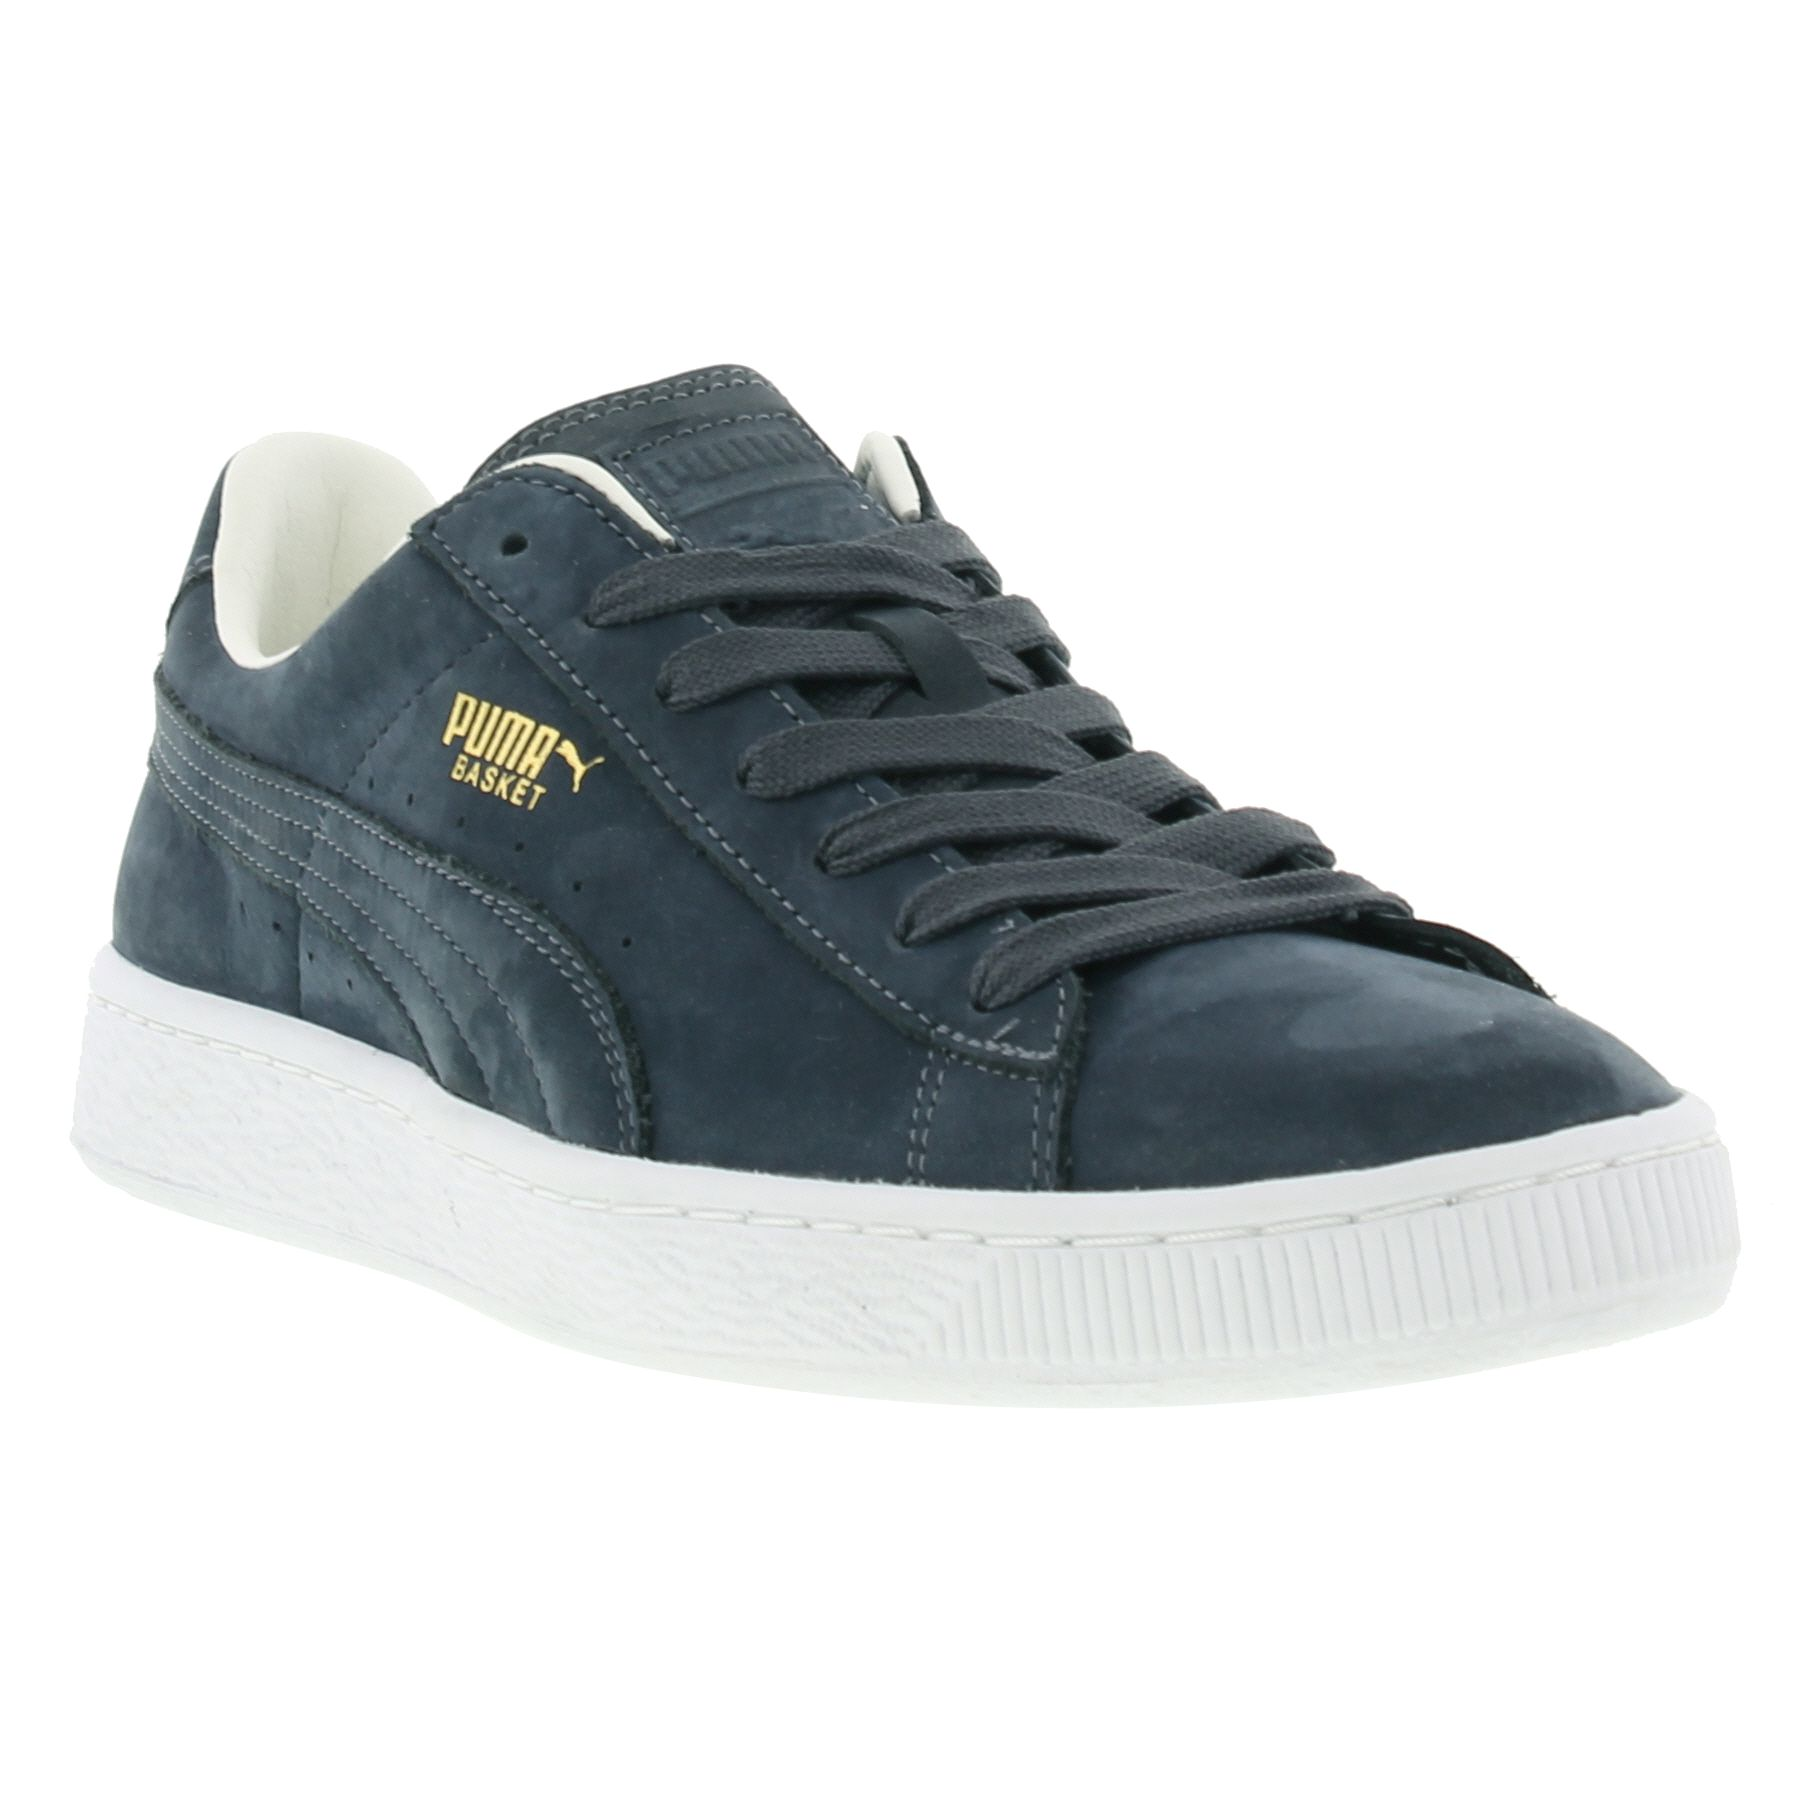 Puma Basket City Series Dark Shadow